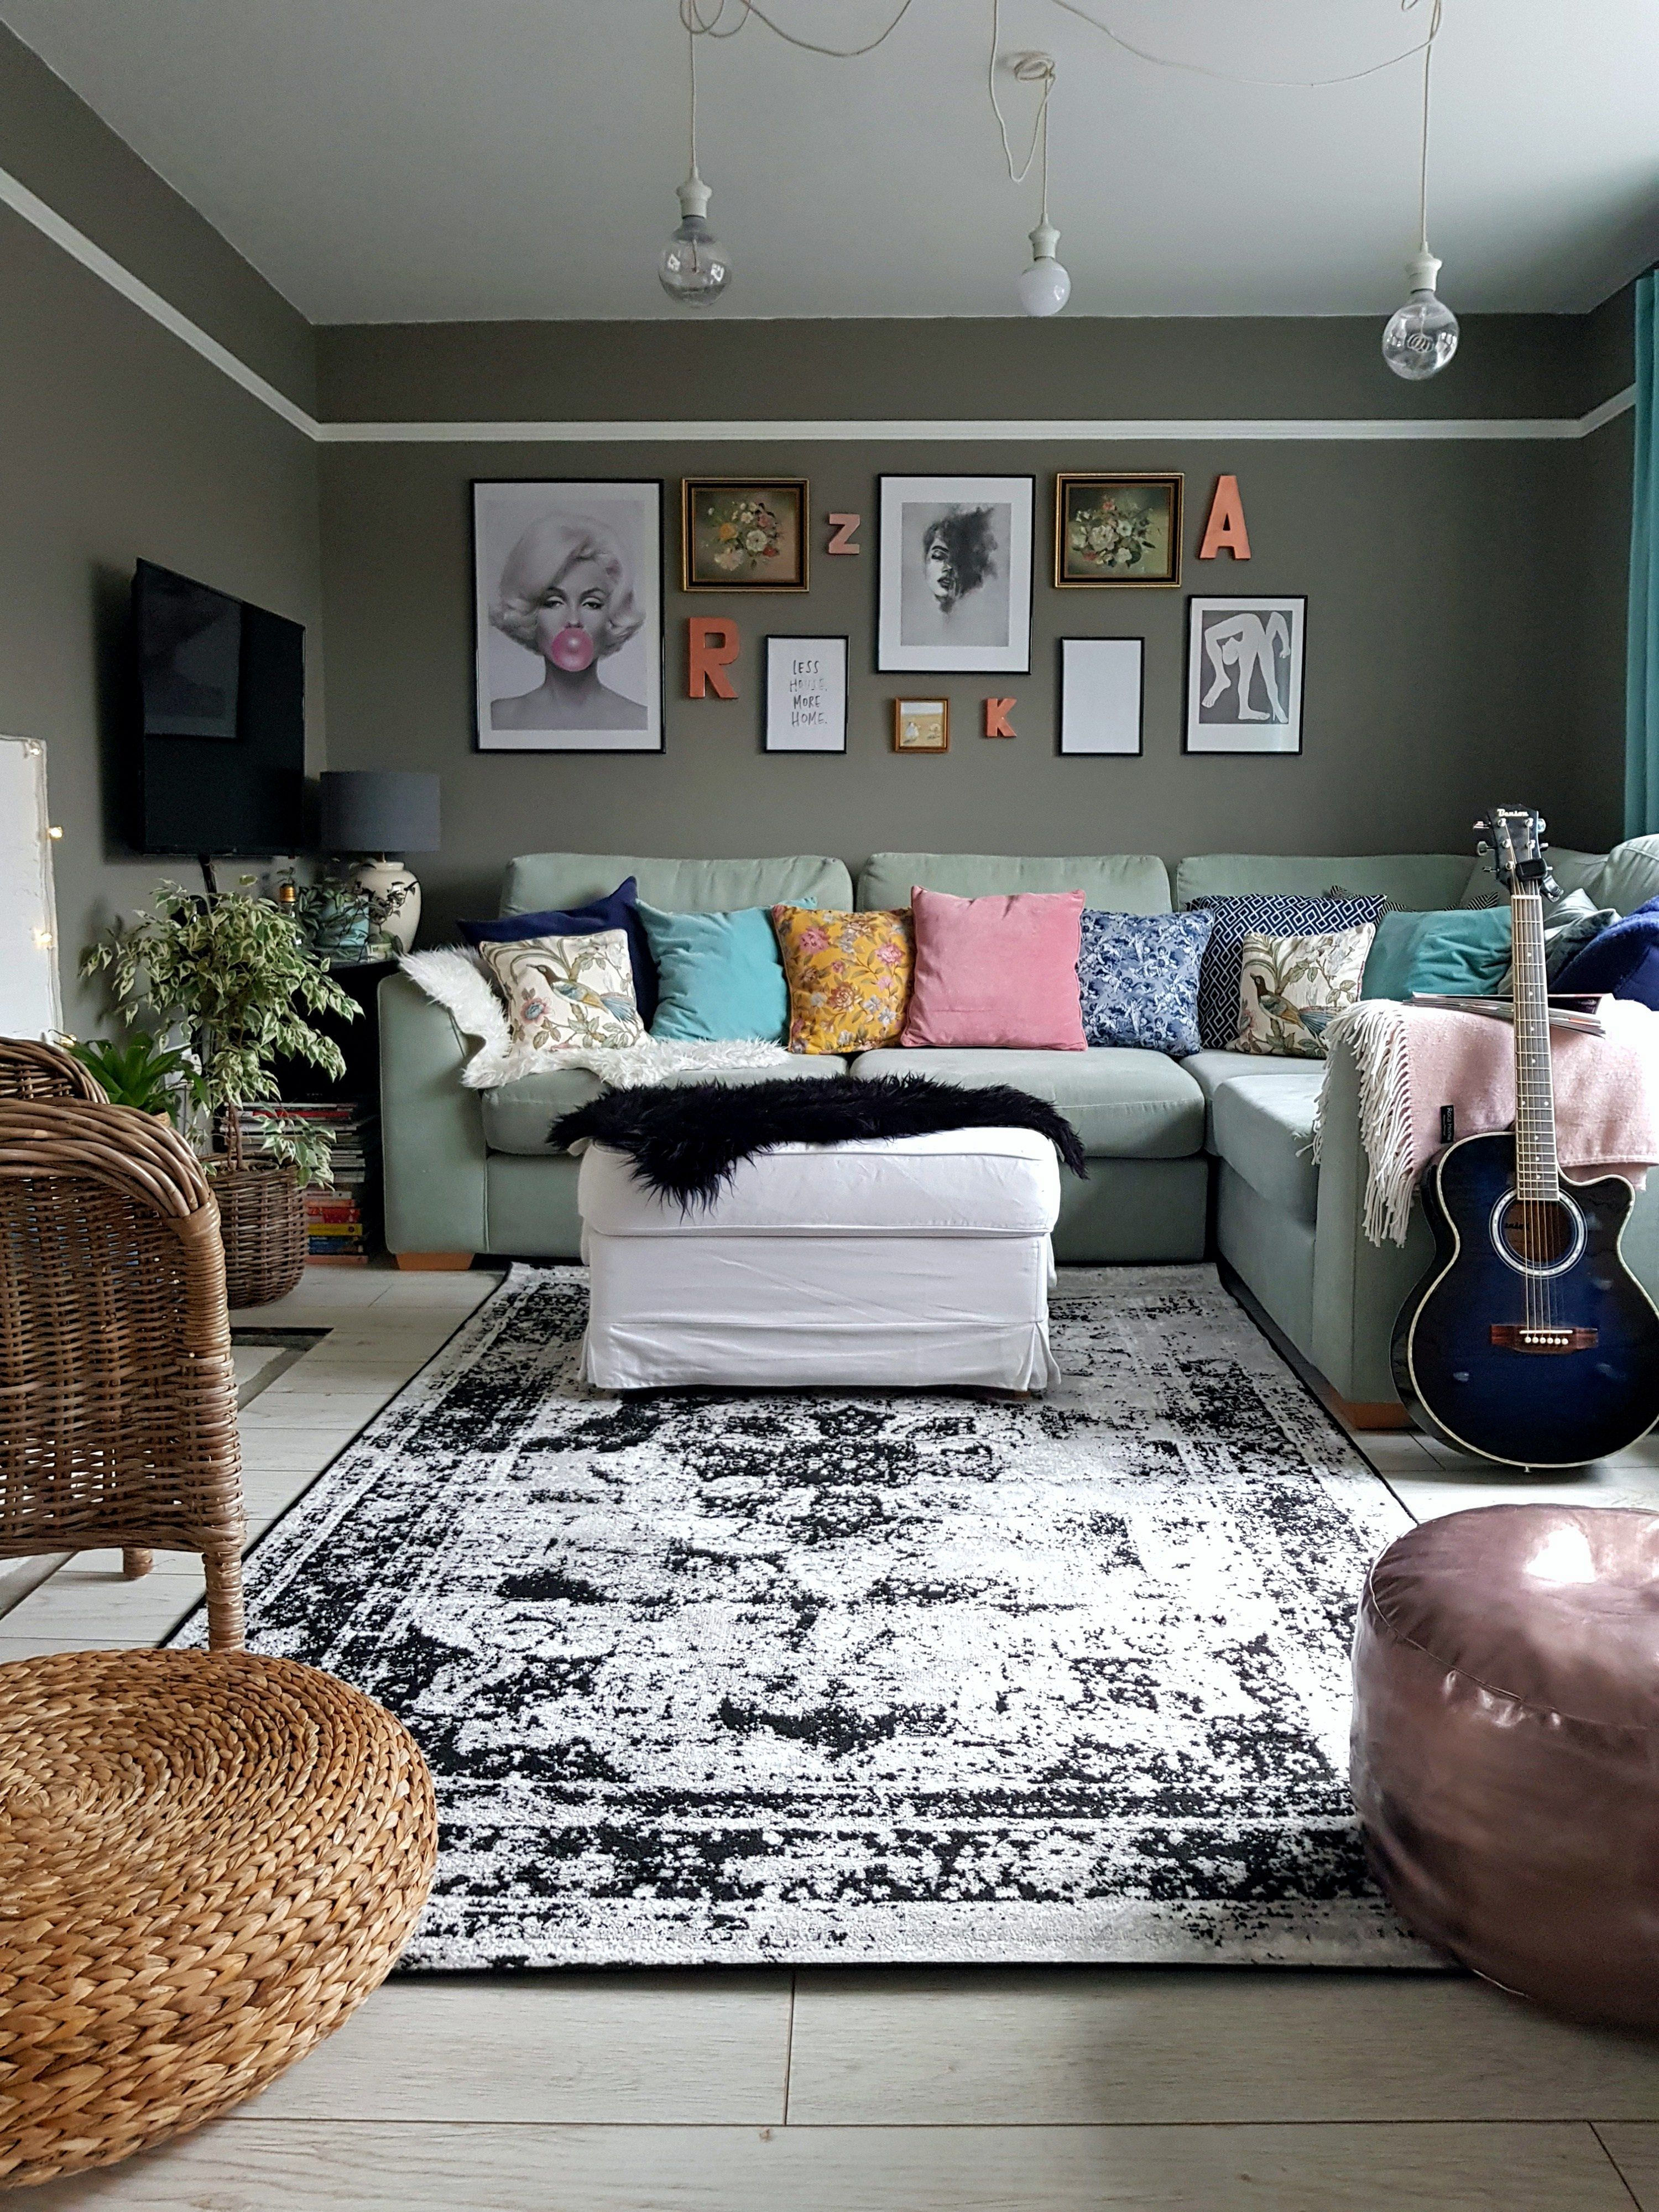 13 Stylish Living Room Interior With Rug Layering Ideas Stylish Living Room Rugs In Living Room Living Room Designs